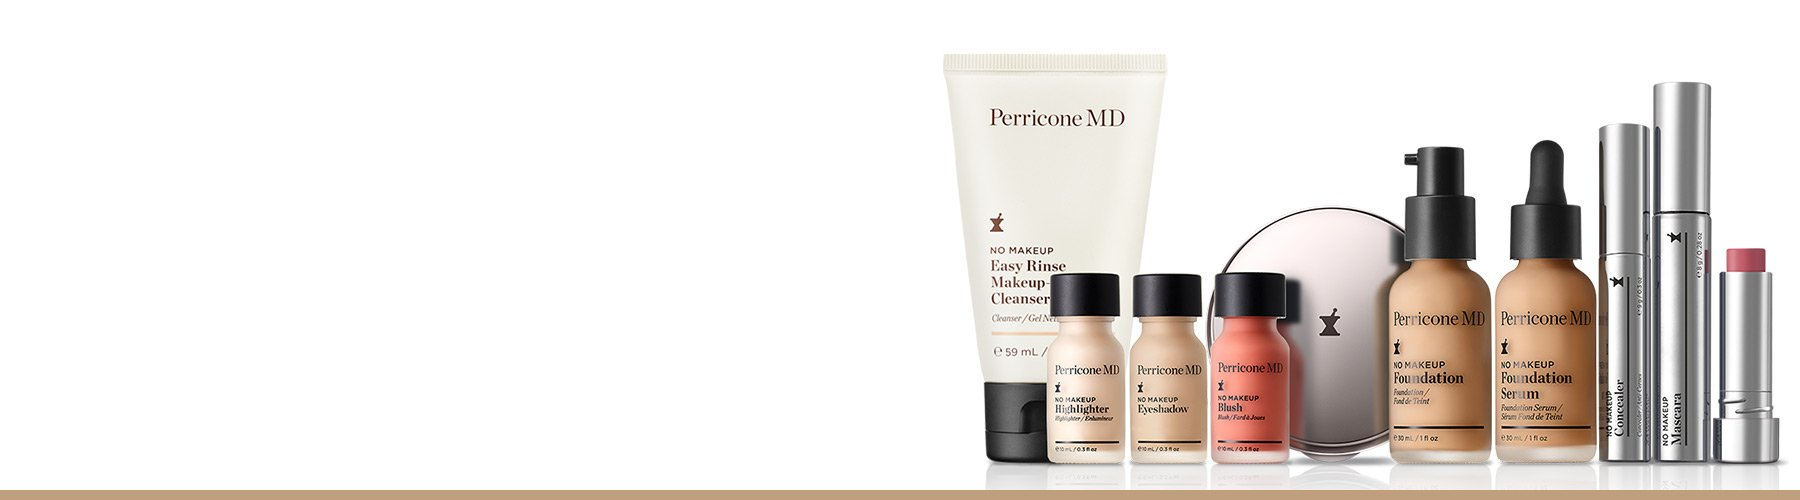 No Makeup Perricone MD